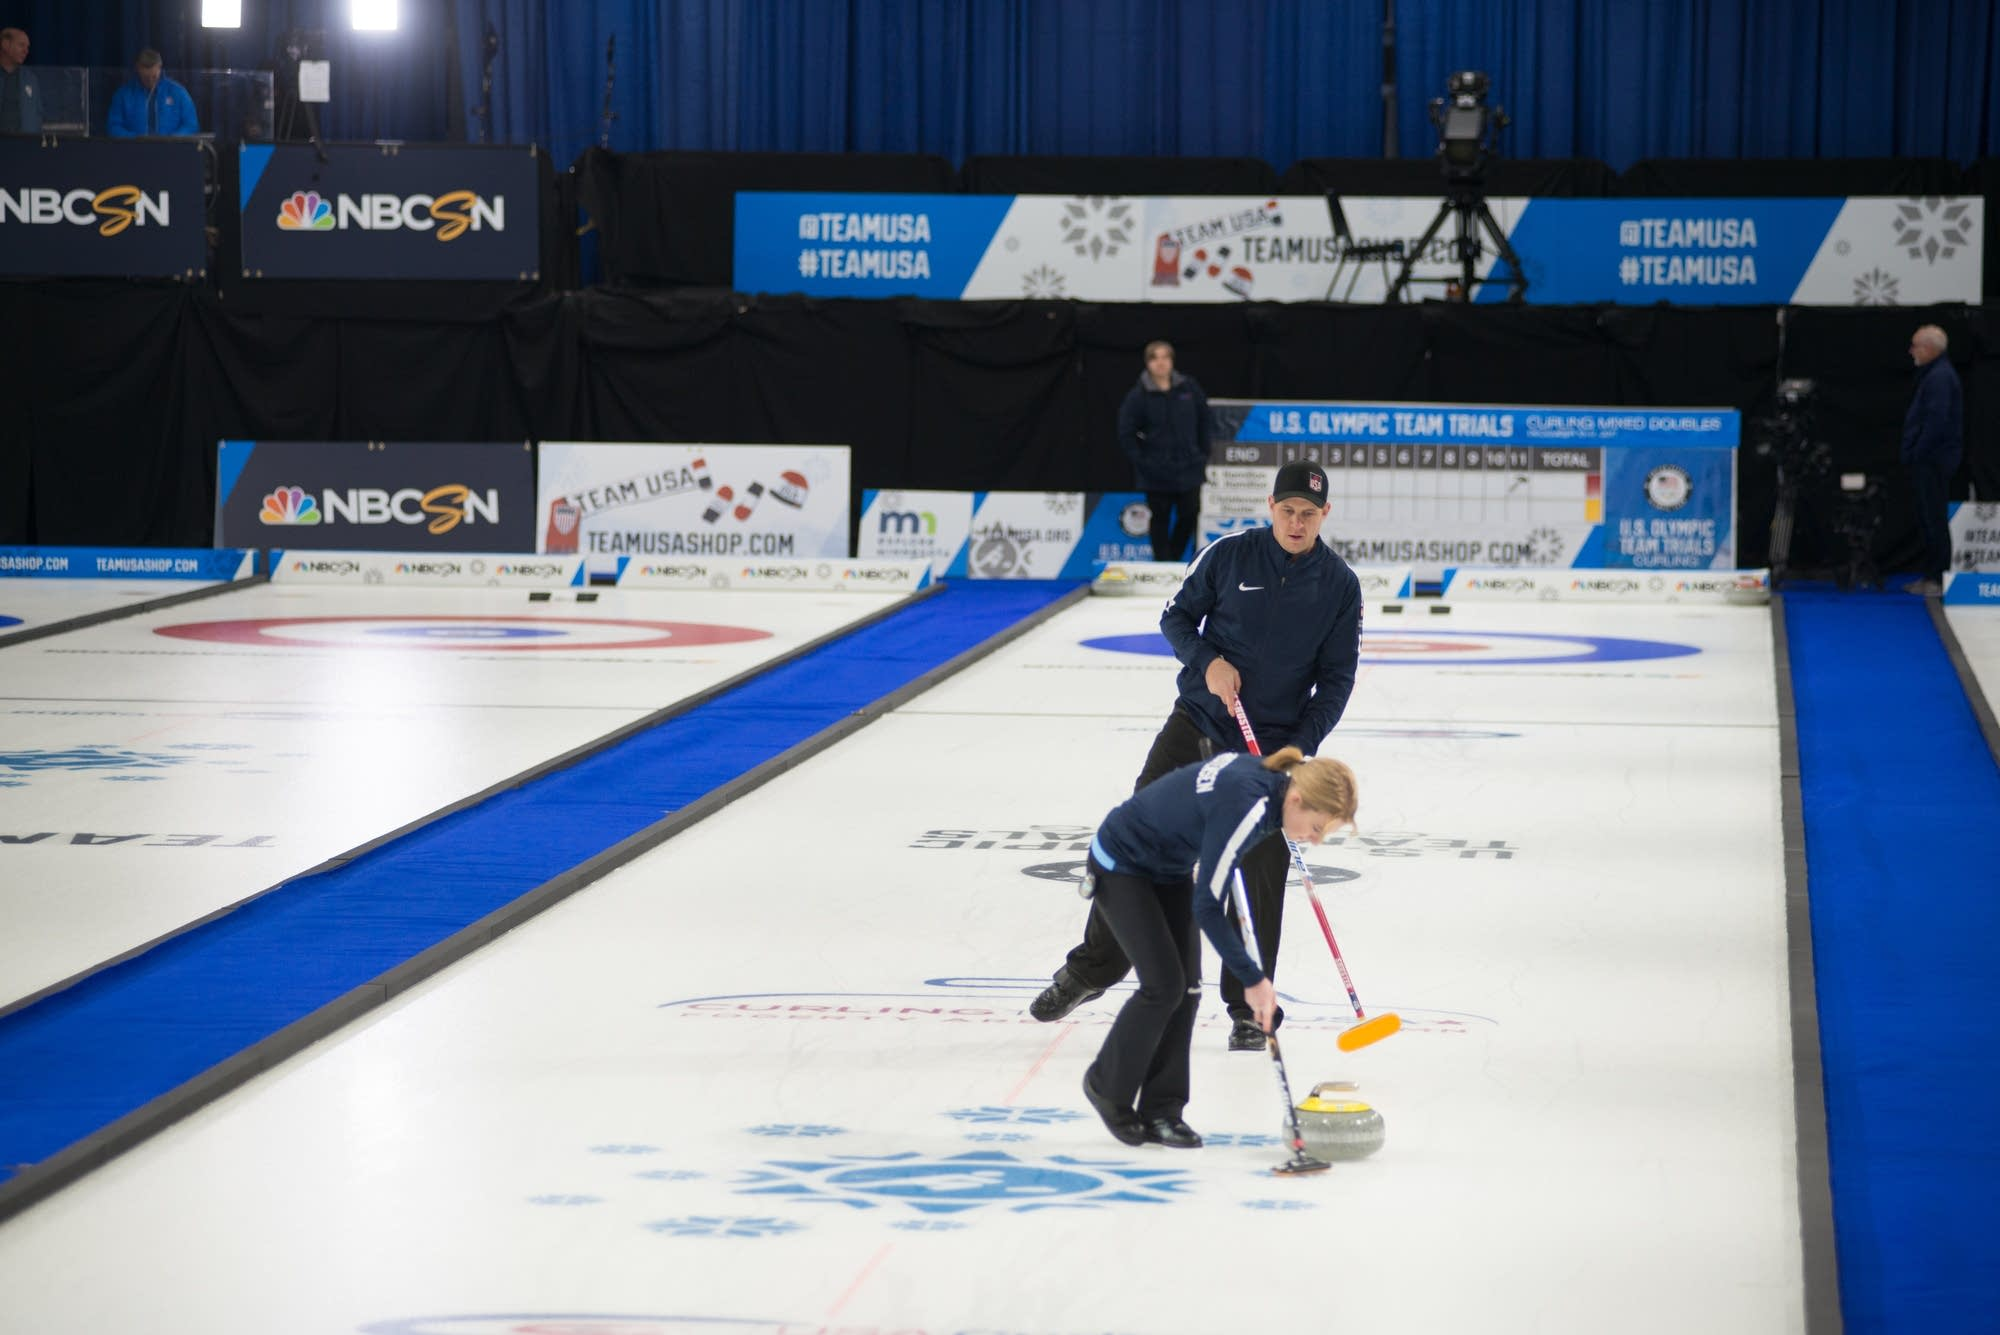 John Shuster guides as Cory Christenen sweeps during the finals.